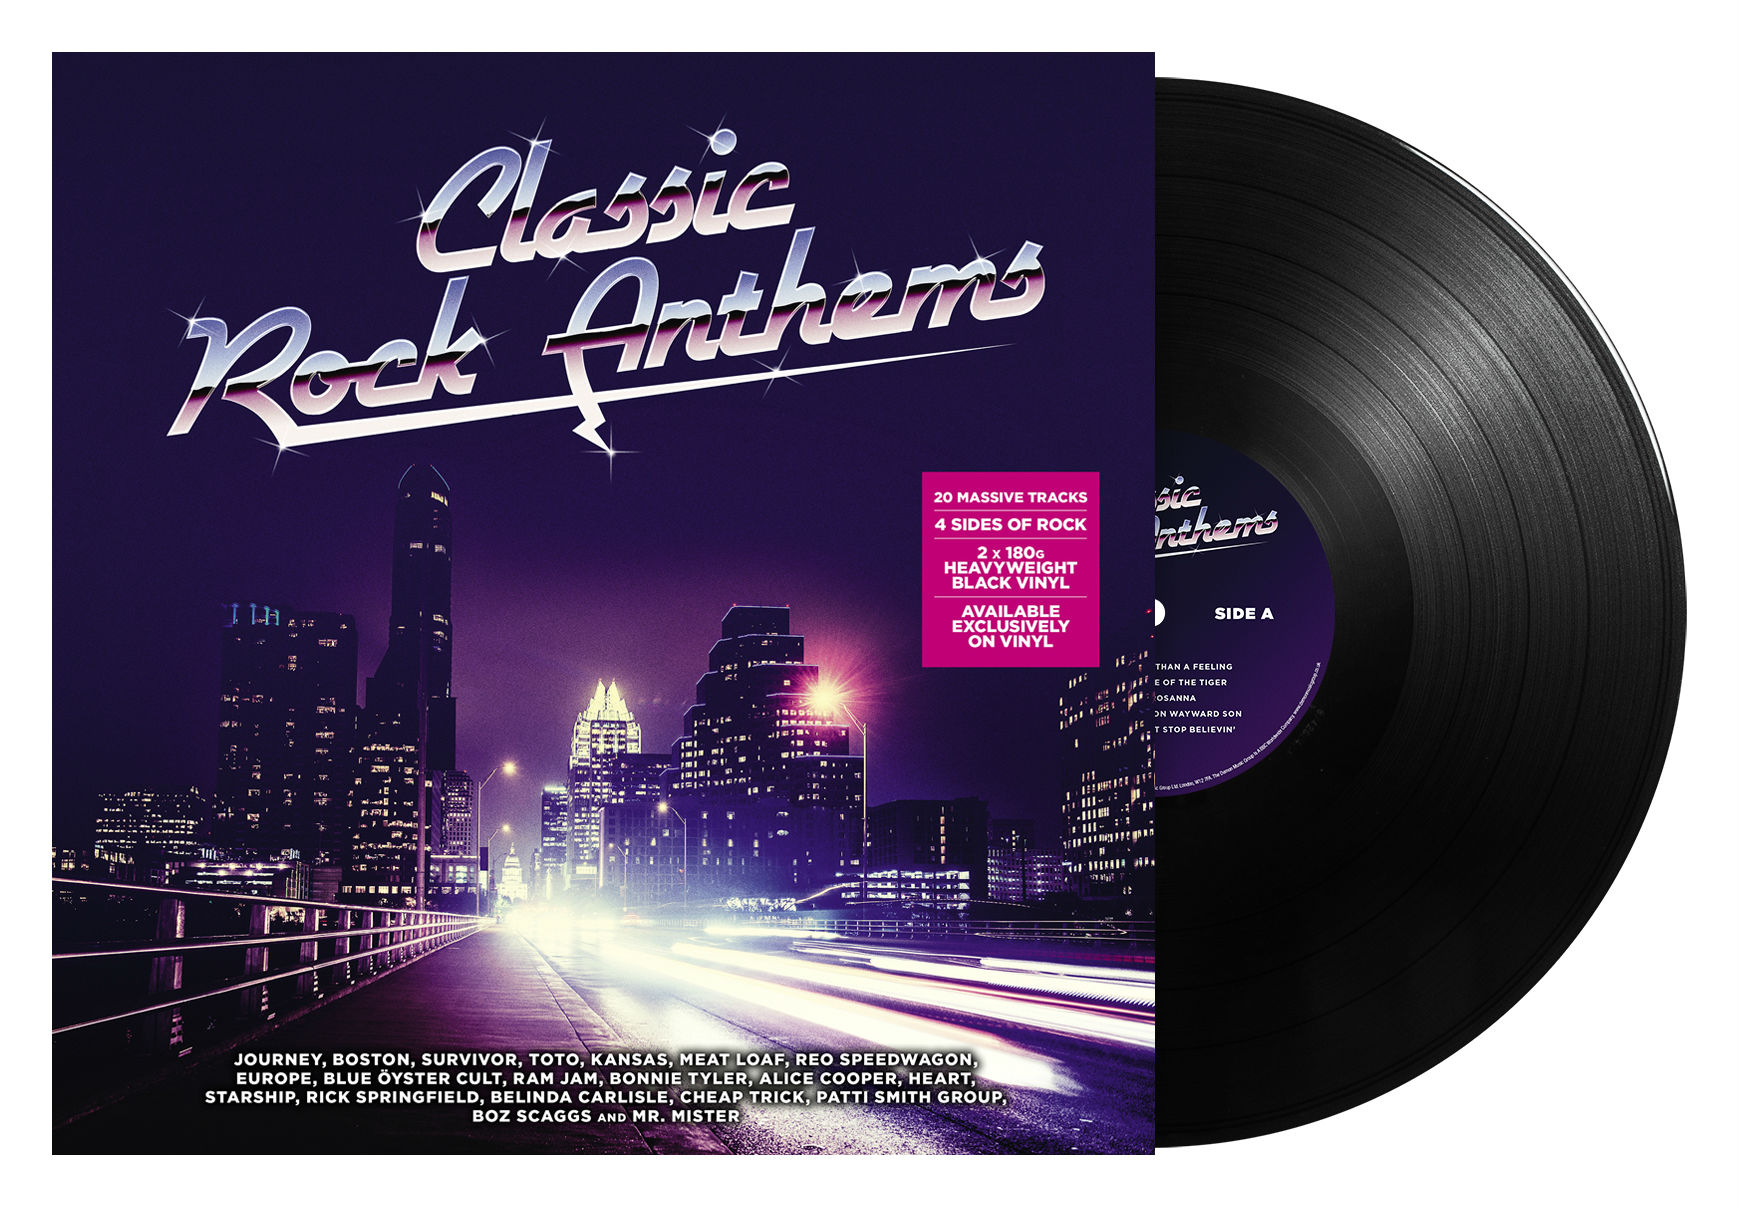 demon music announce classic rock anthems compilation